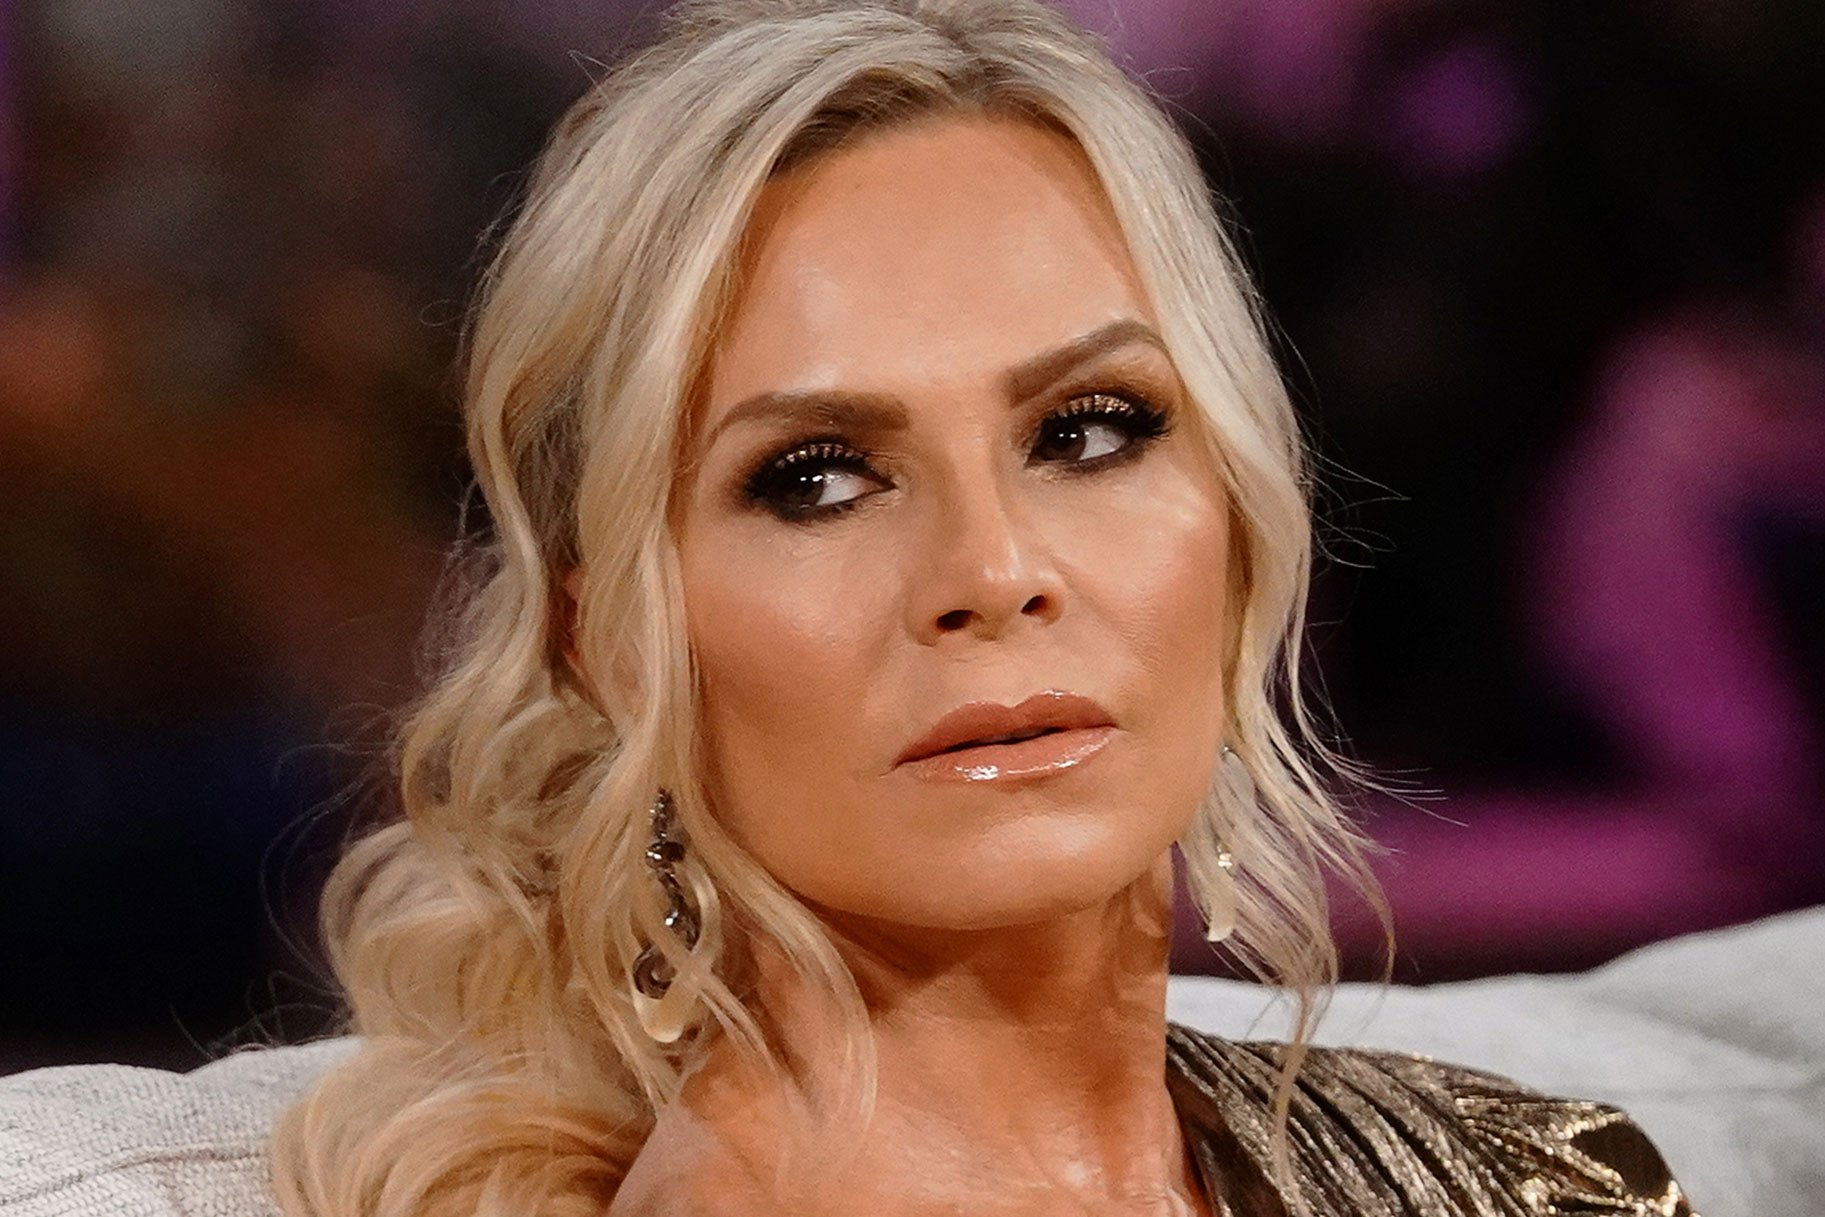 Tamra Judge Would Love To Return To RHOC – She Reportedly Thinks The Show Is A 'Hot Mess' Without Her